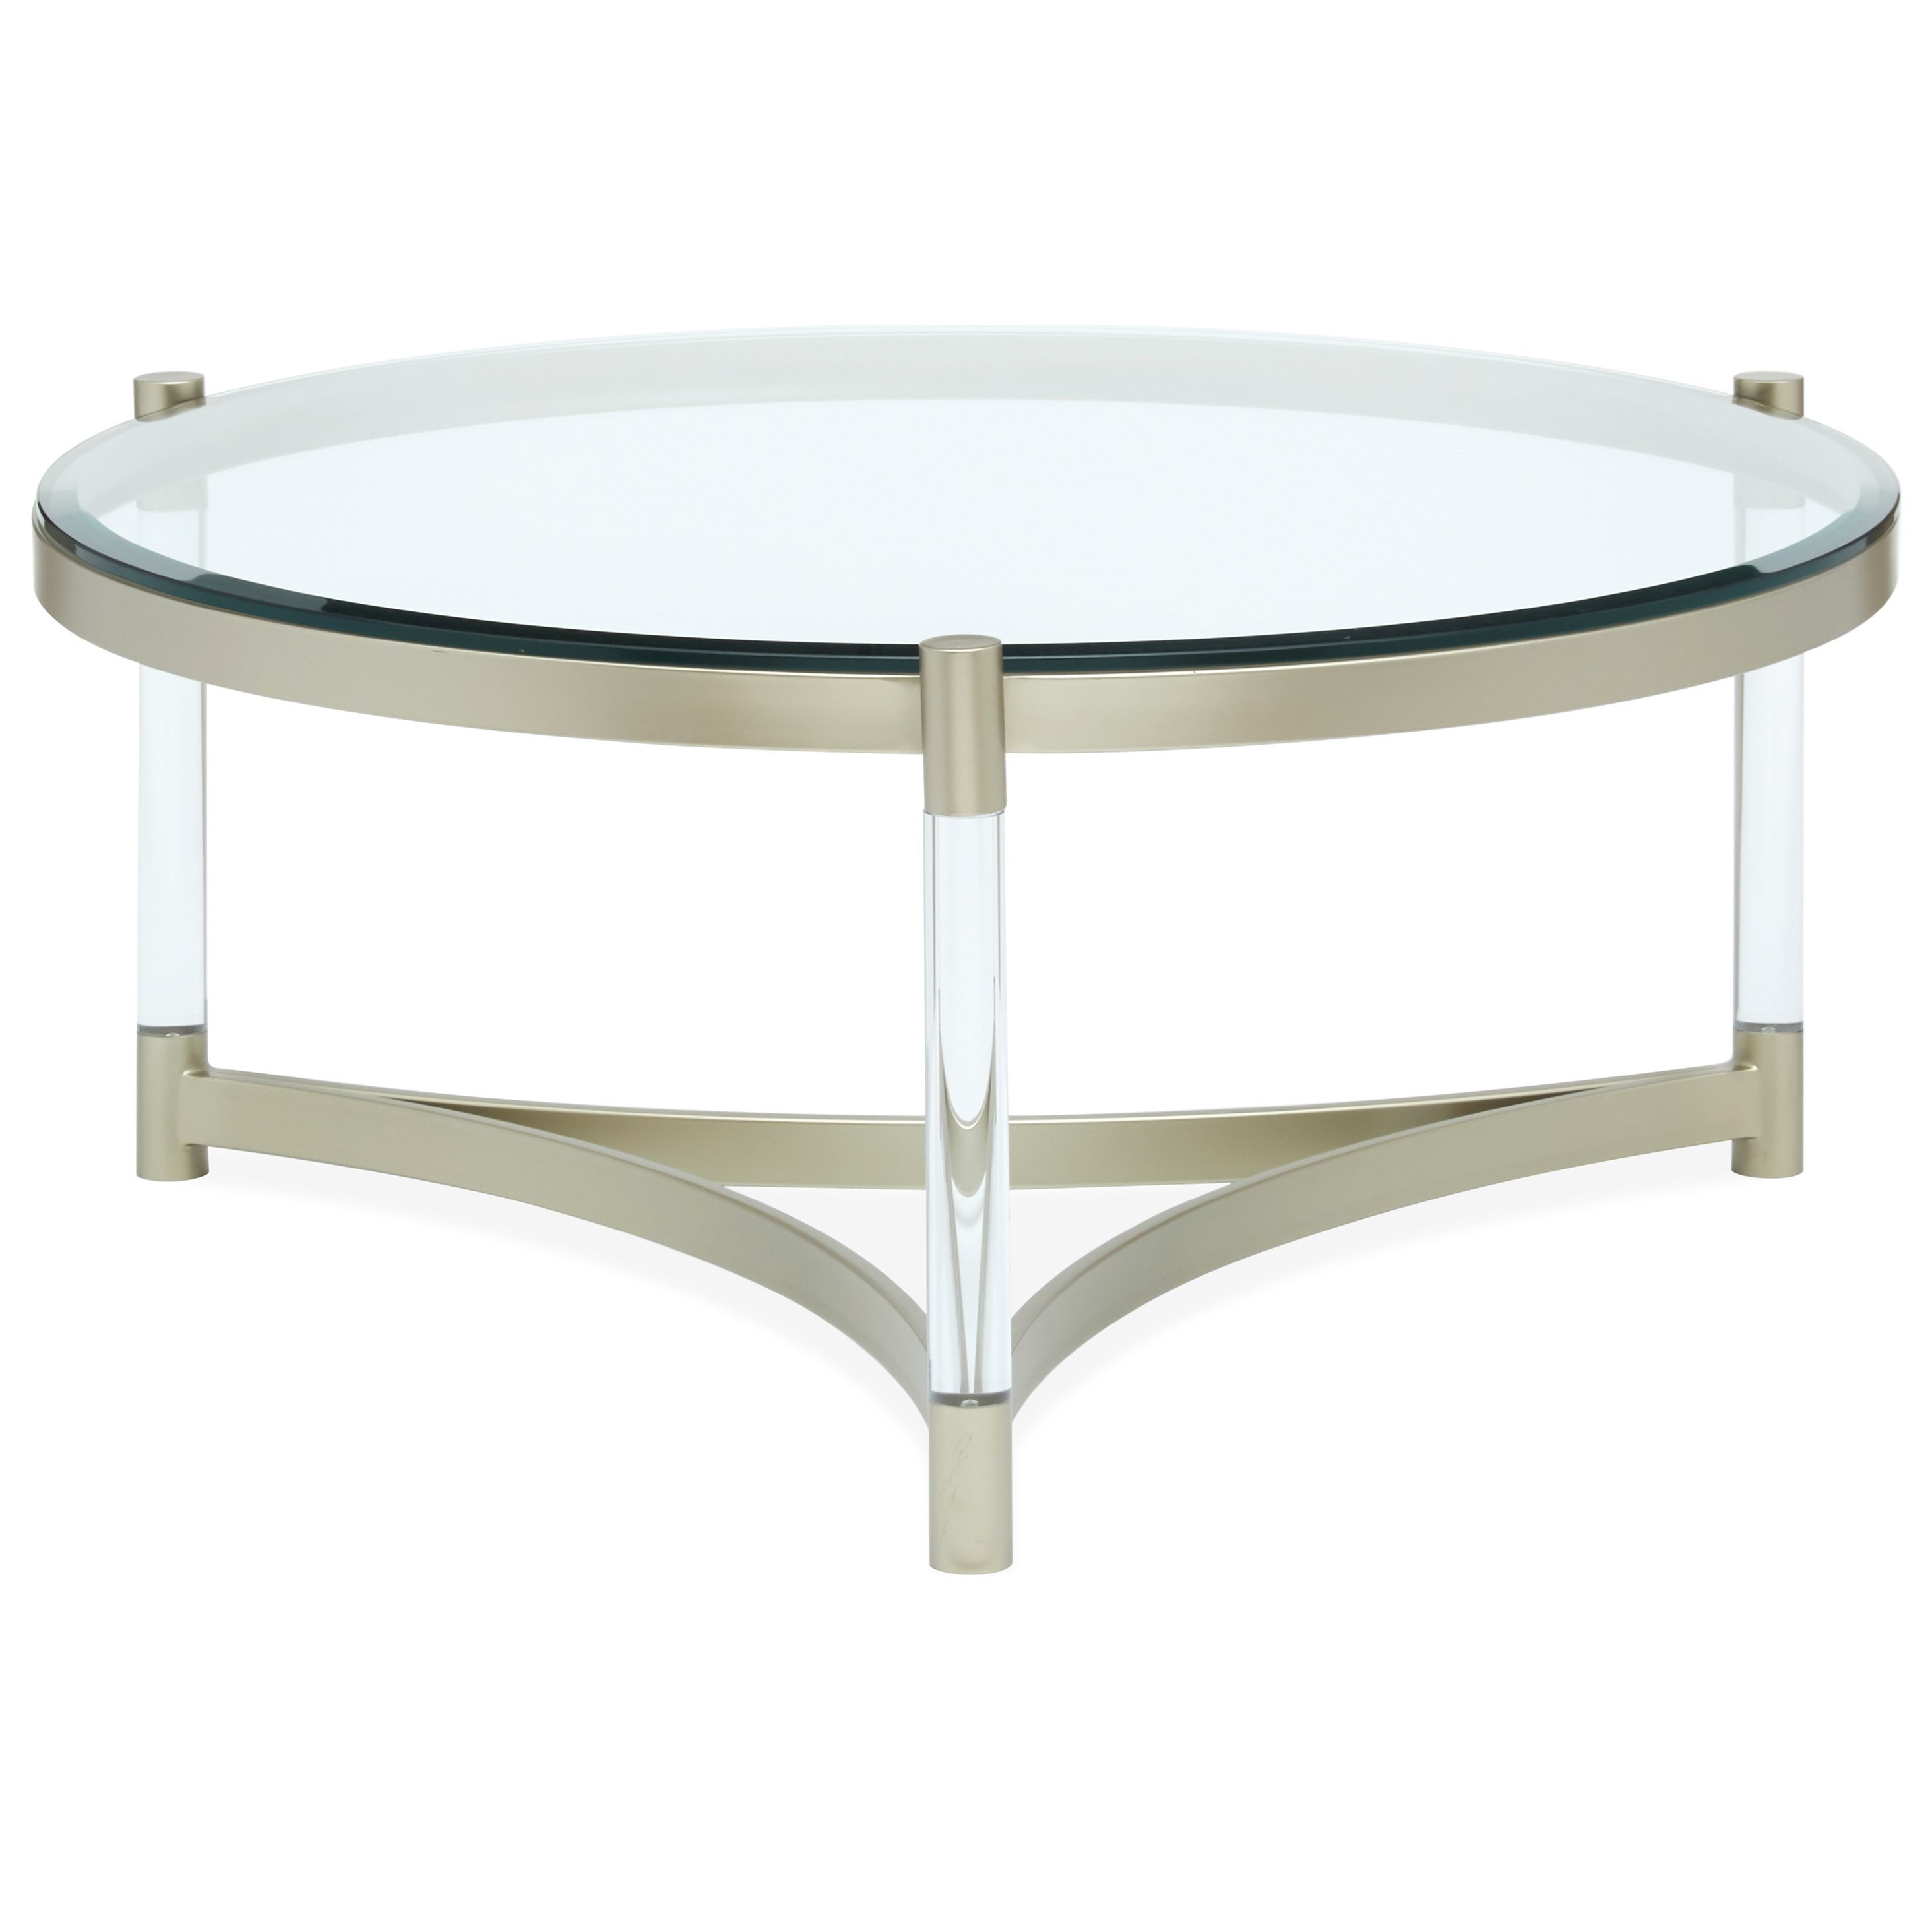 Sonya Sonya Round Cocktail Table by Magnussen Home at Morris Home